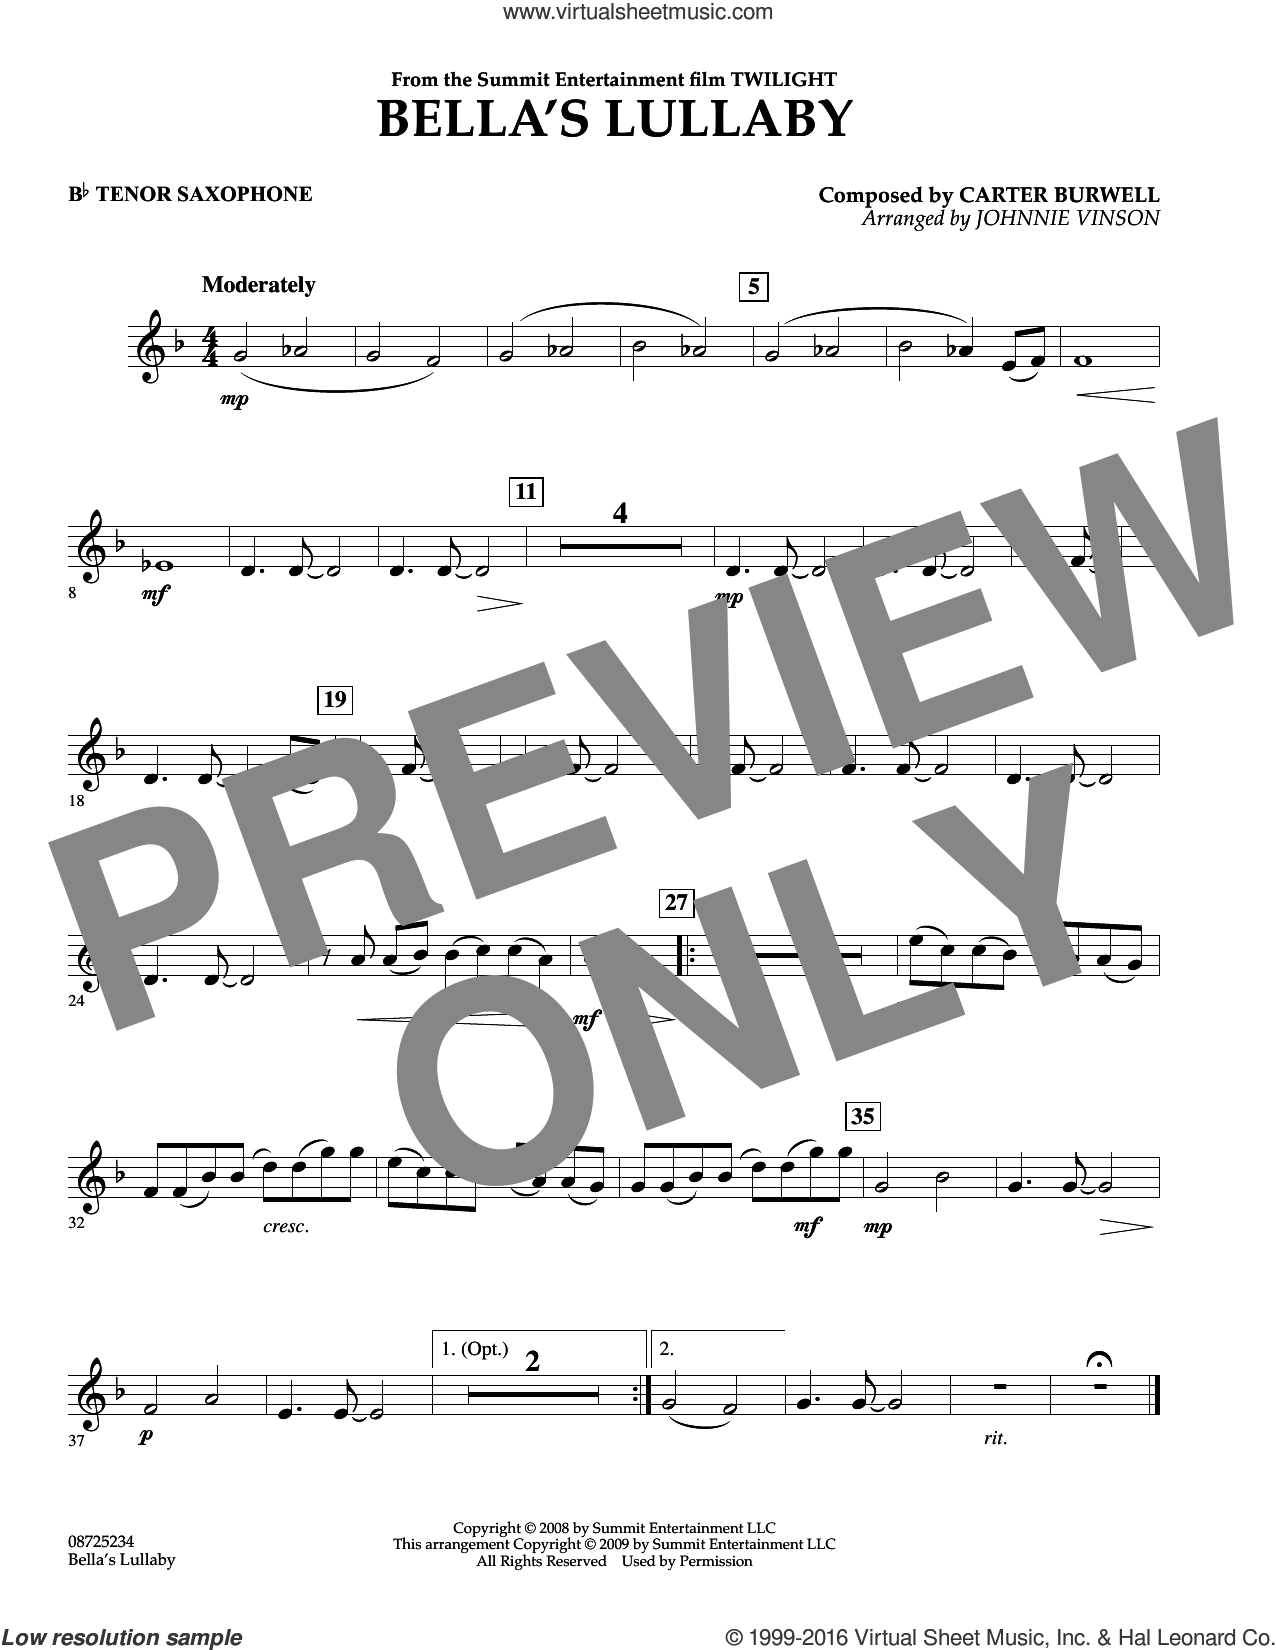 Bella's Lullaby (from Twilight) sheet music for concert band (Bb tenor saxophone) by Carter Burwell and Johnnie Vinson, intermediate